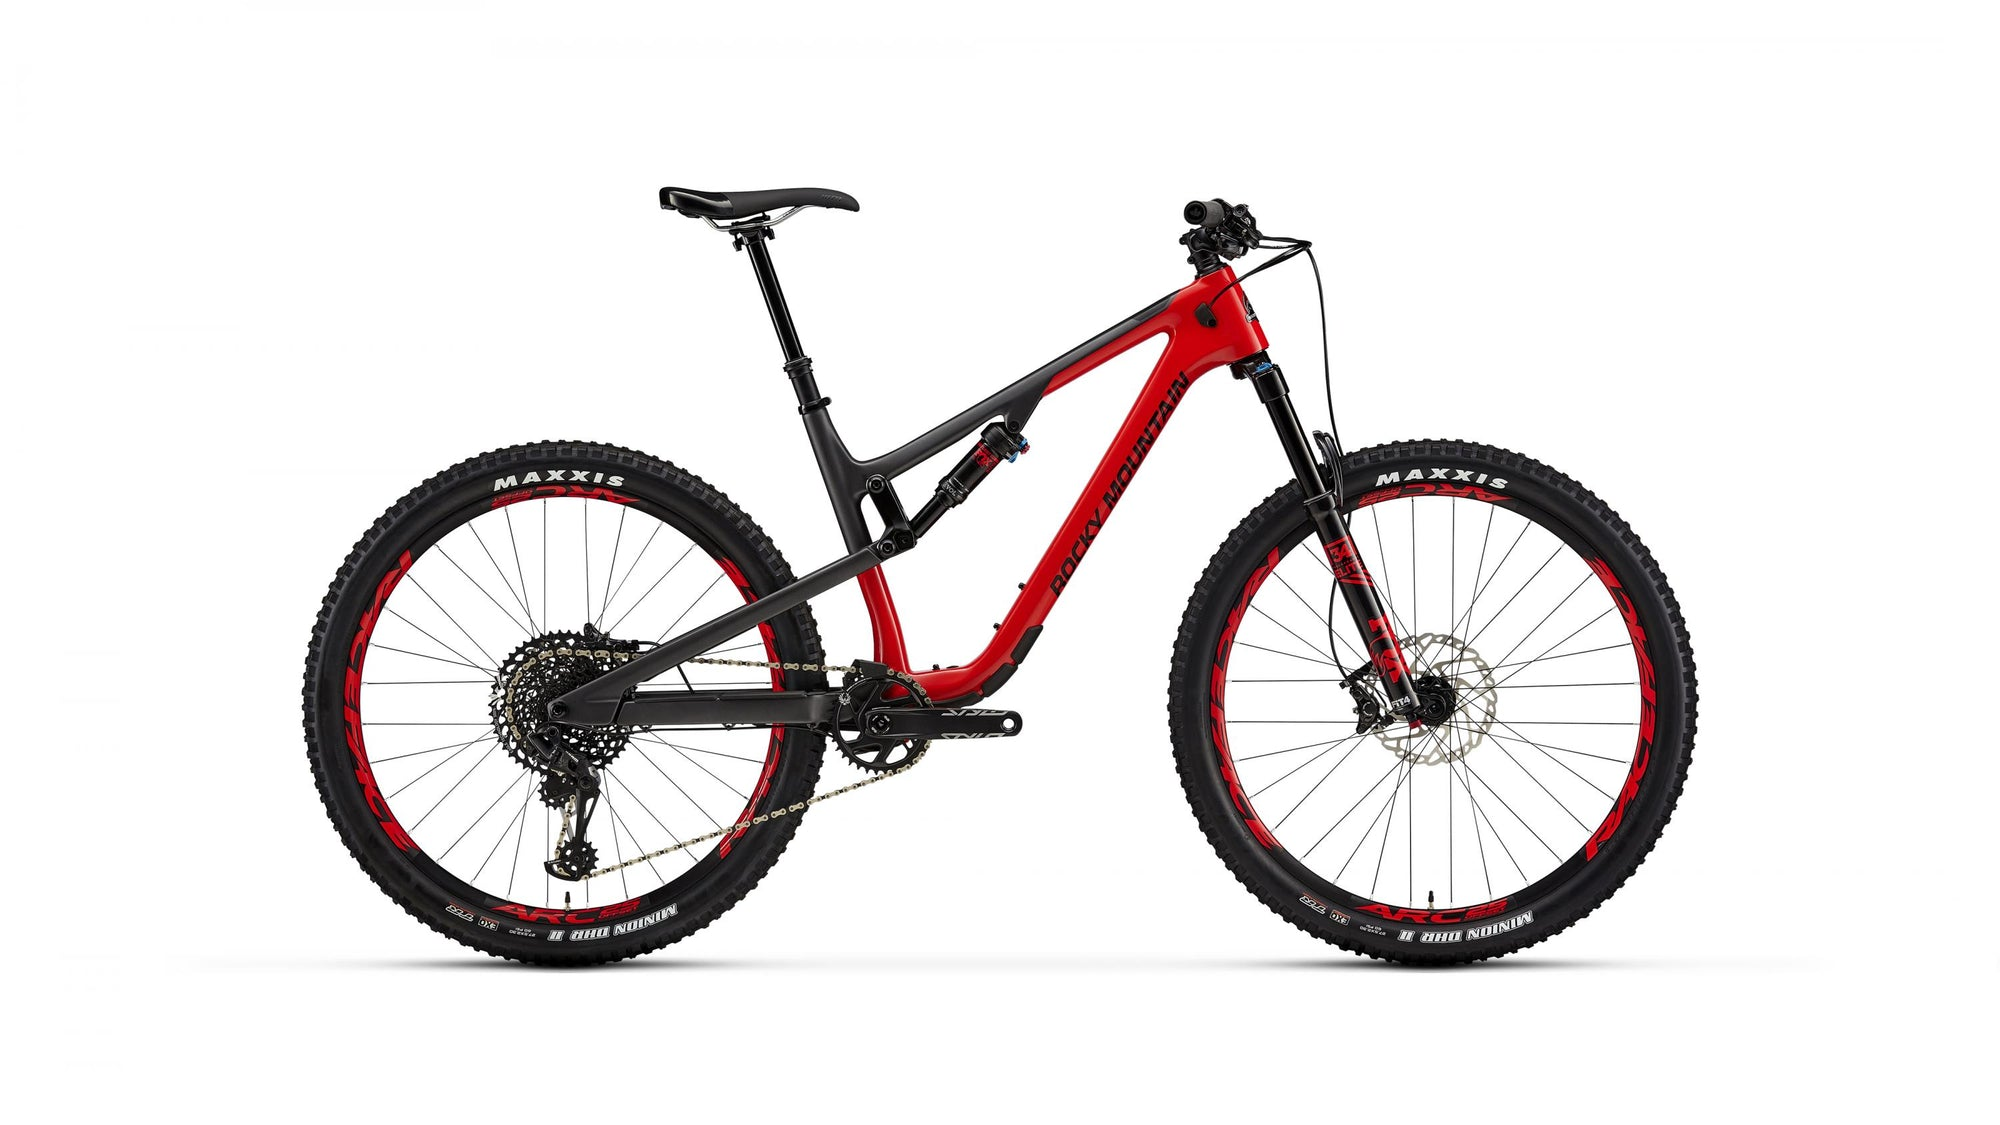 Rocky Mountain Thunderbolt Carbon 70 165 - 172.5cm (SM) - TUNE cycles